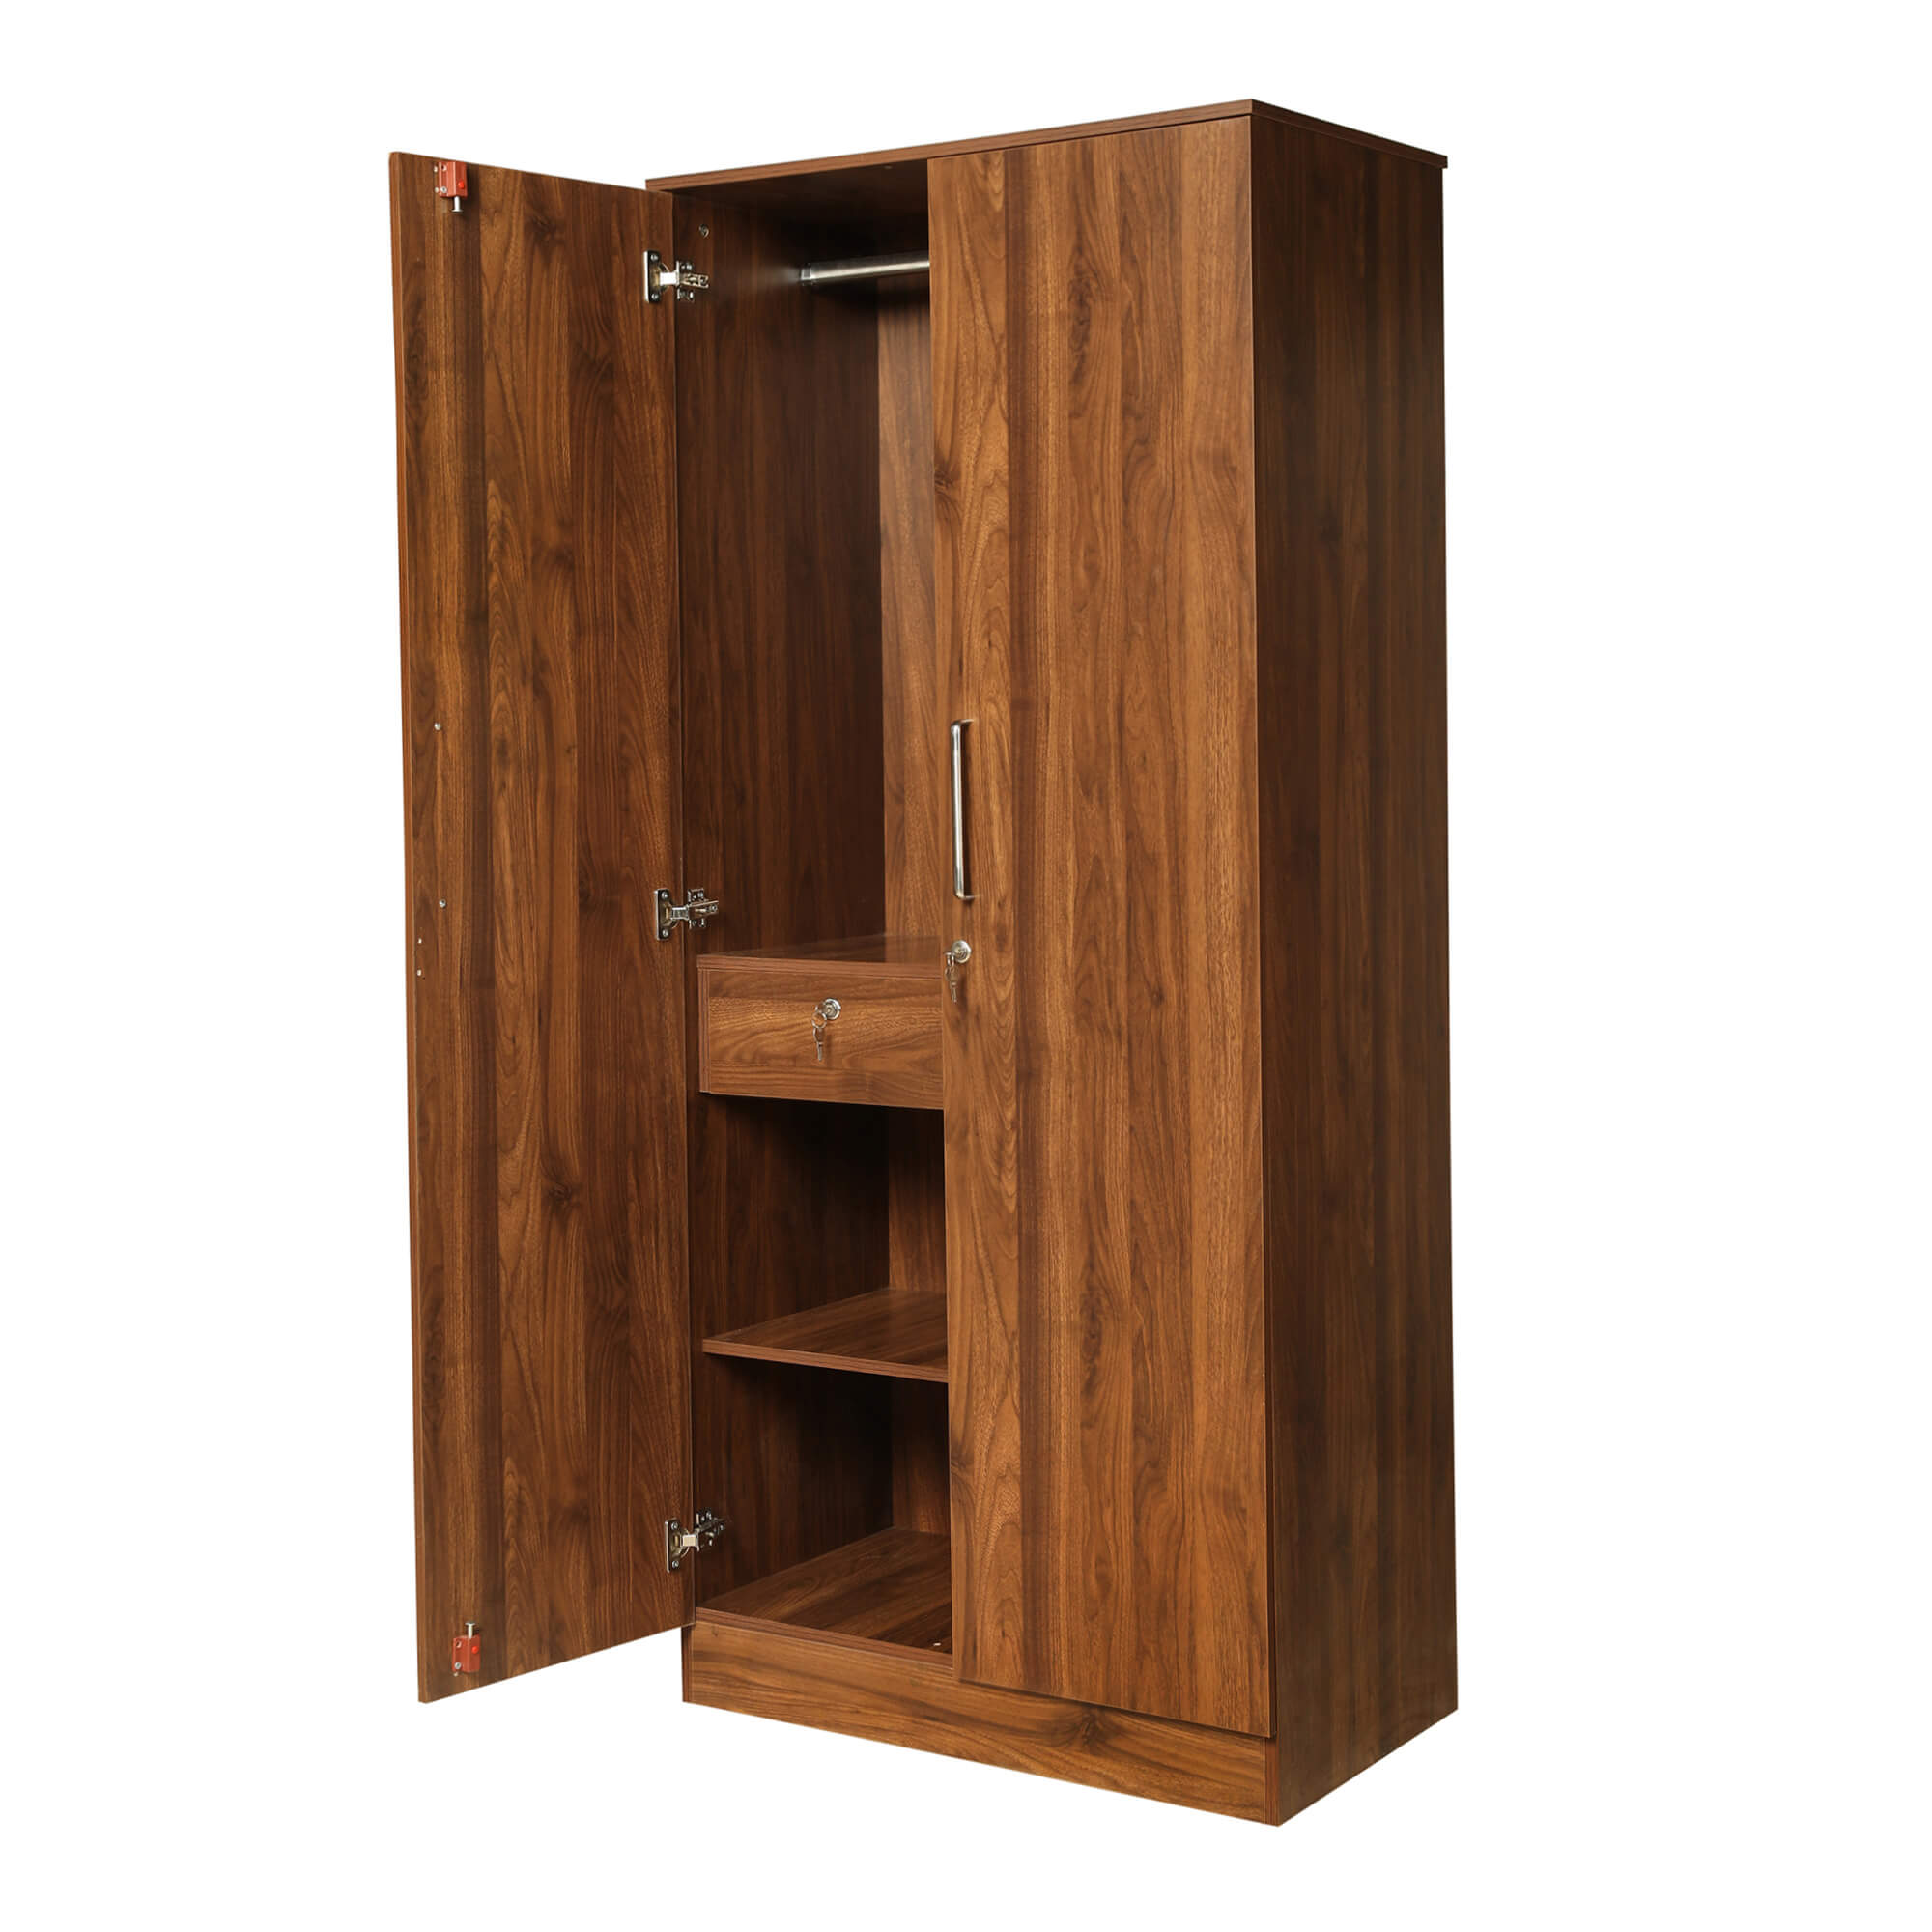 Tartan 2 door Wardrobe with Drawer